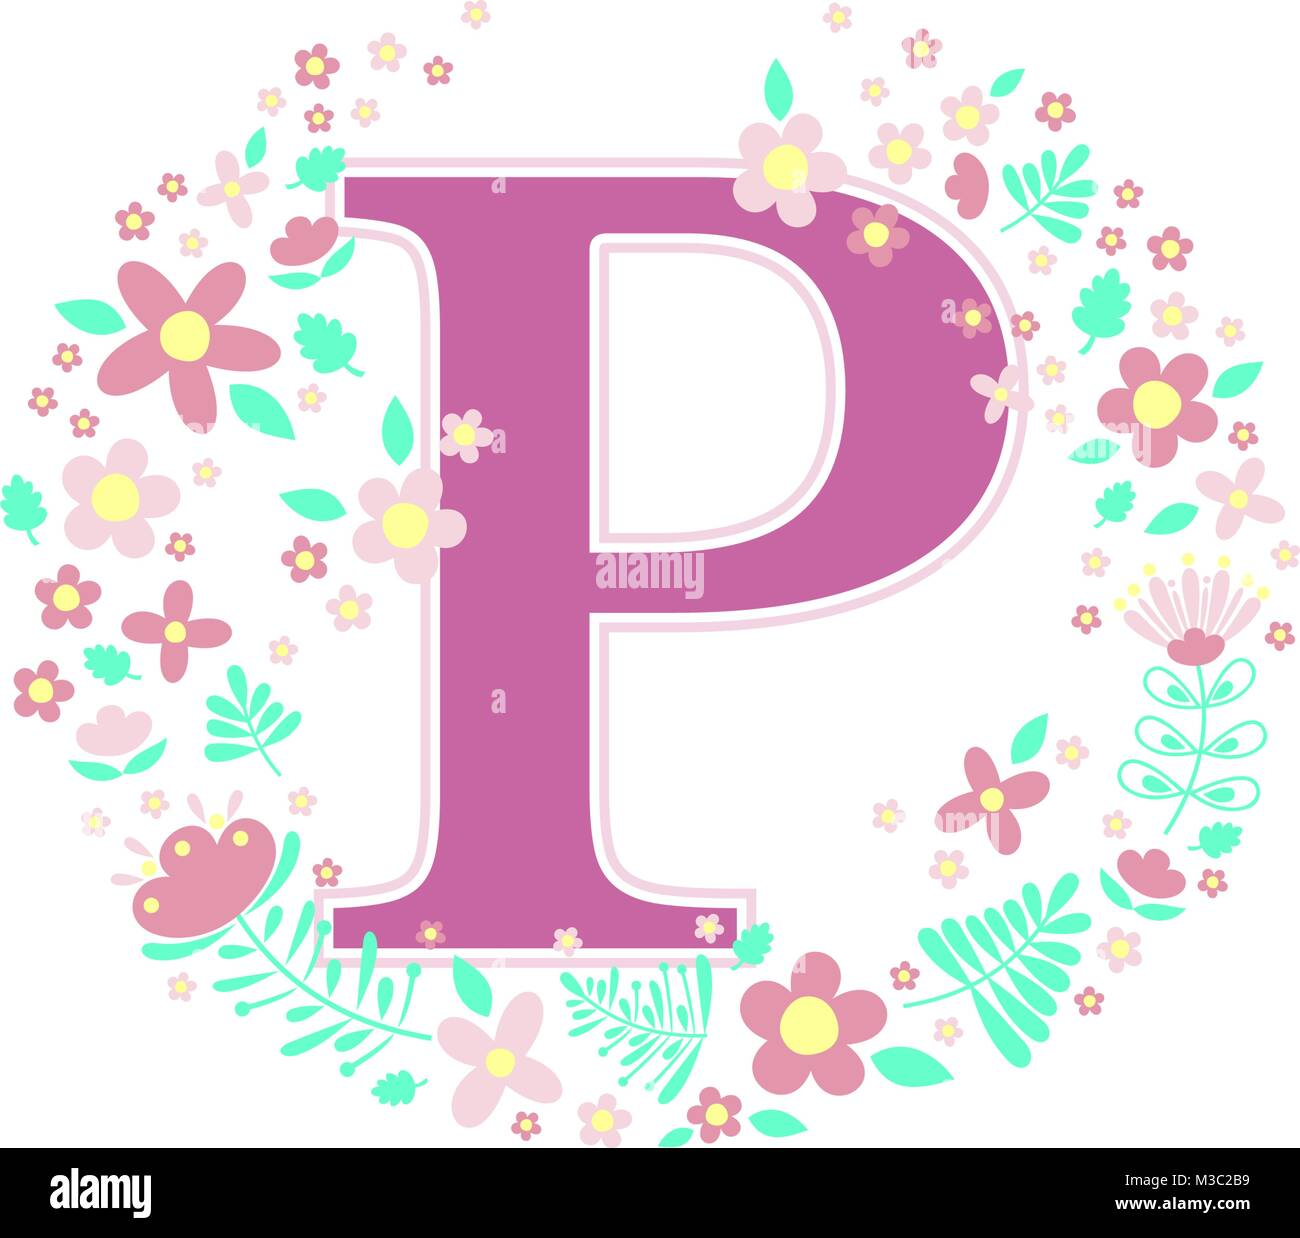 Letter P Stock Vector Images - Alamy